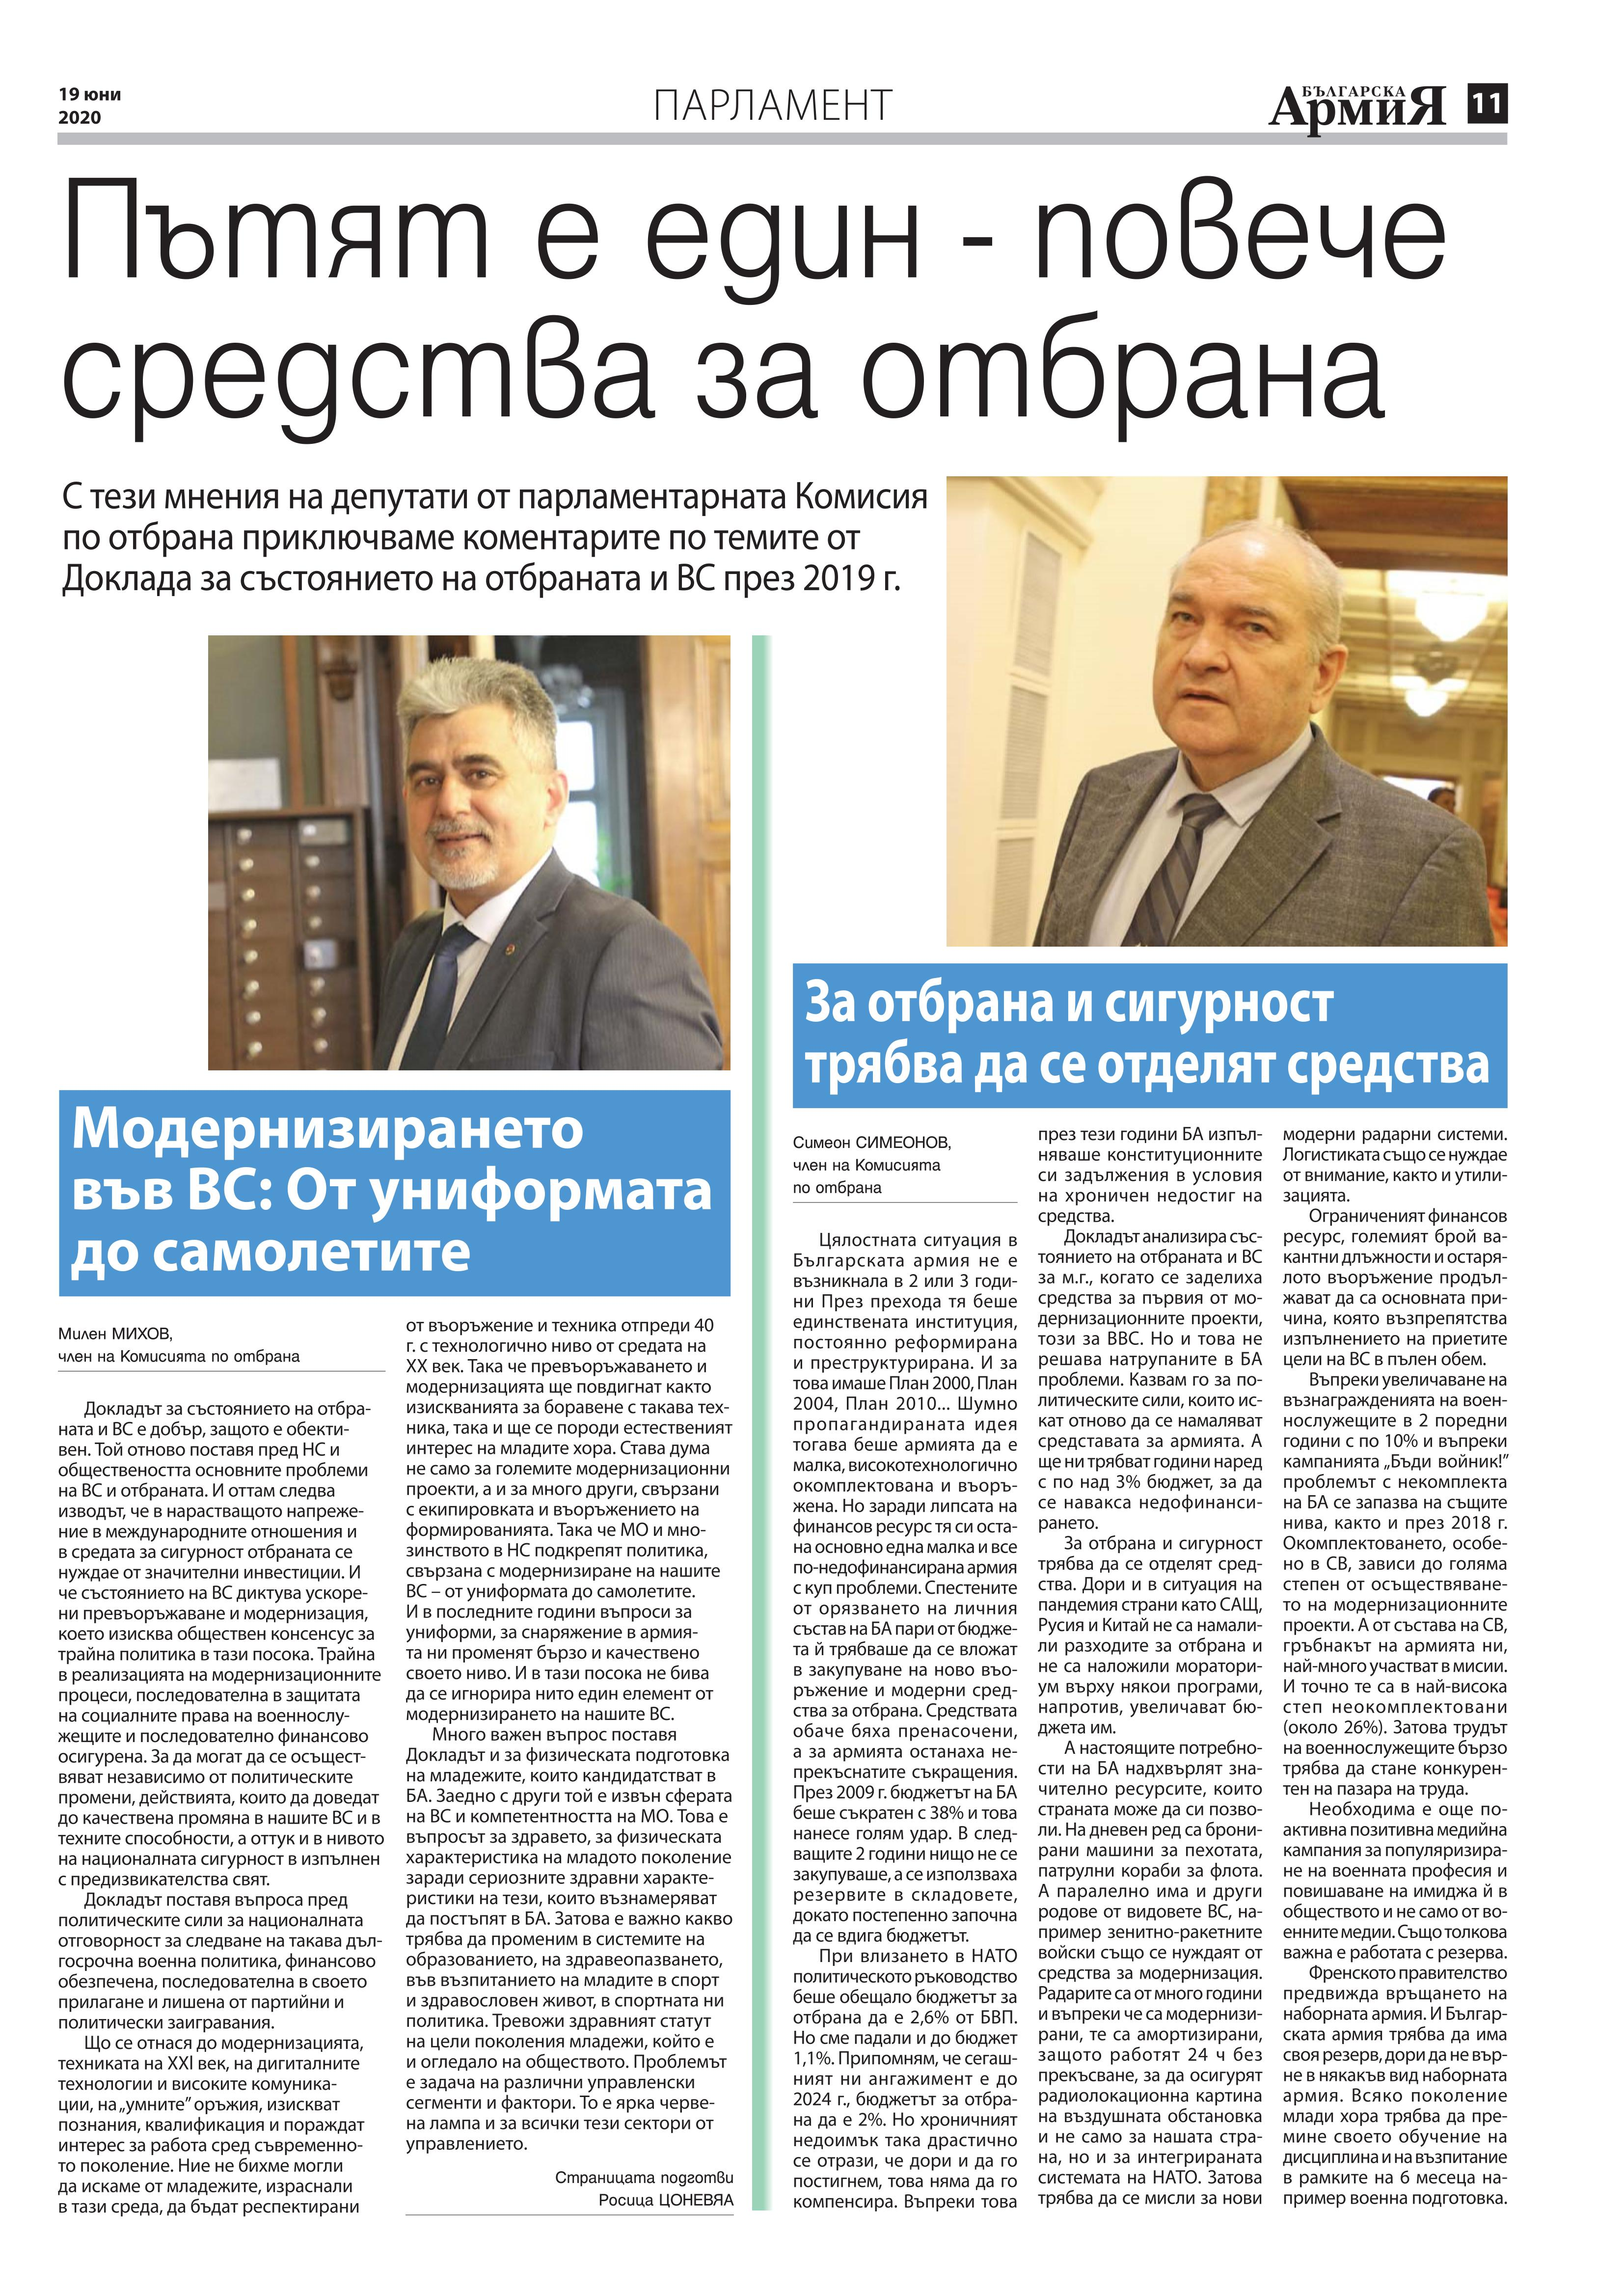 https://armymedia.bg/wp-content/uploads/2015/06/11.page1_-143.jpg